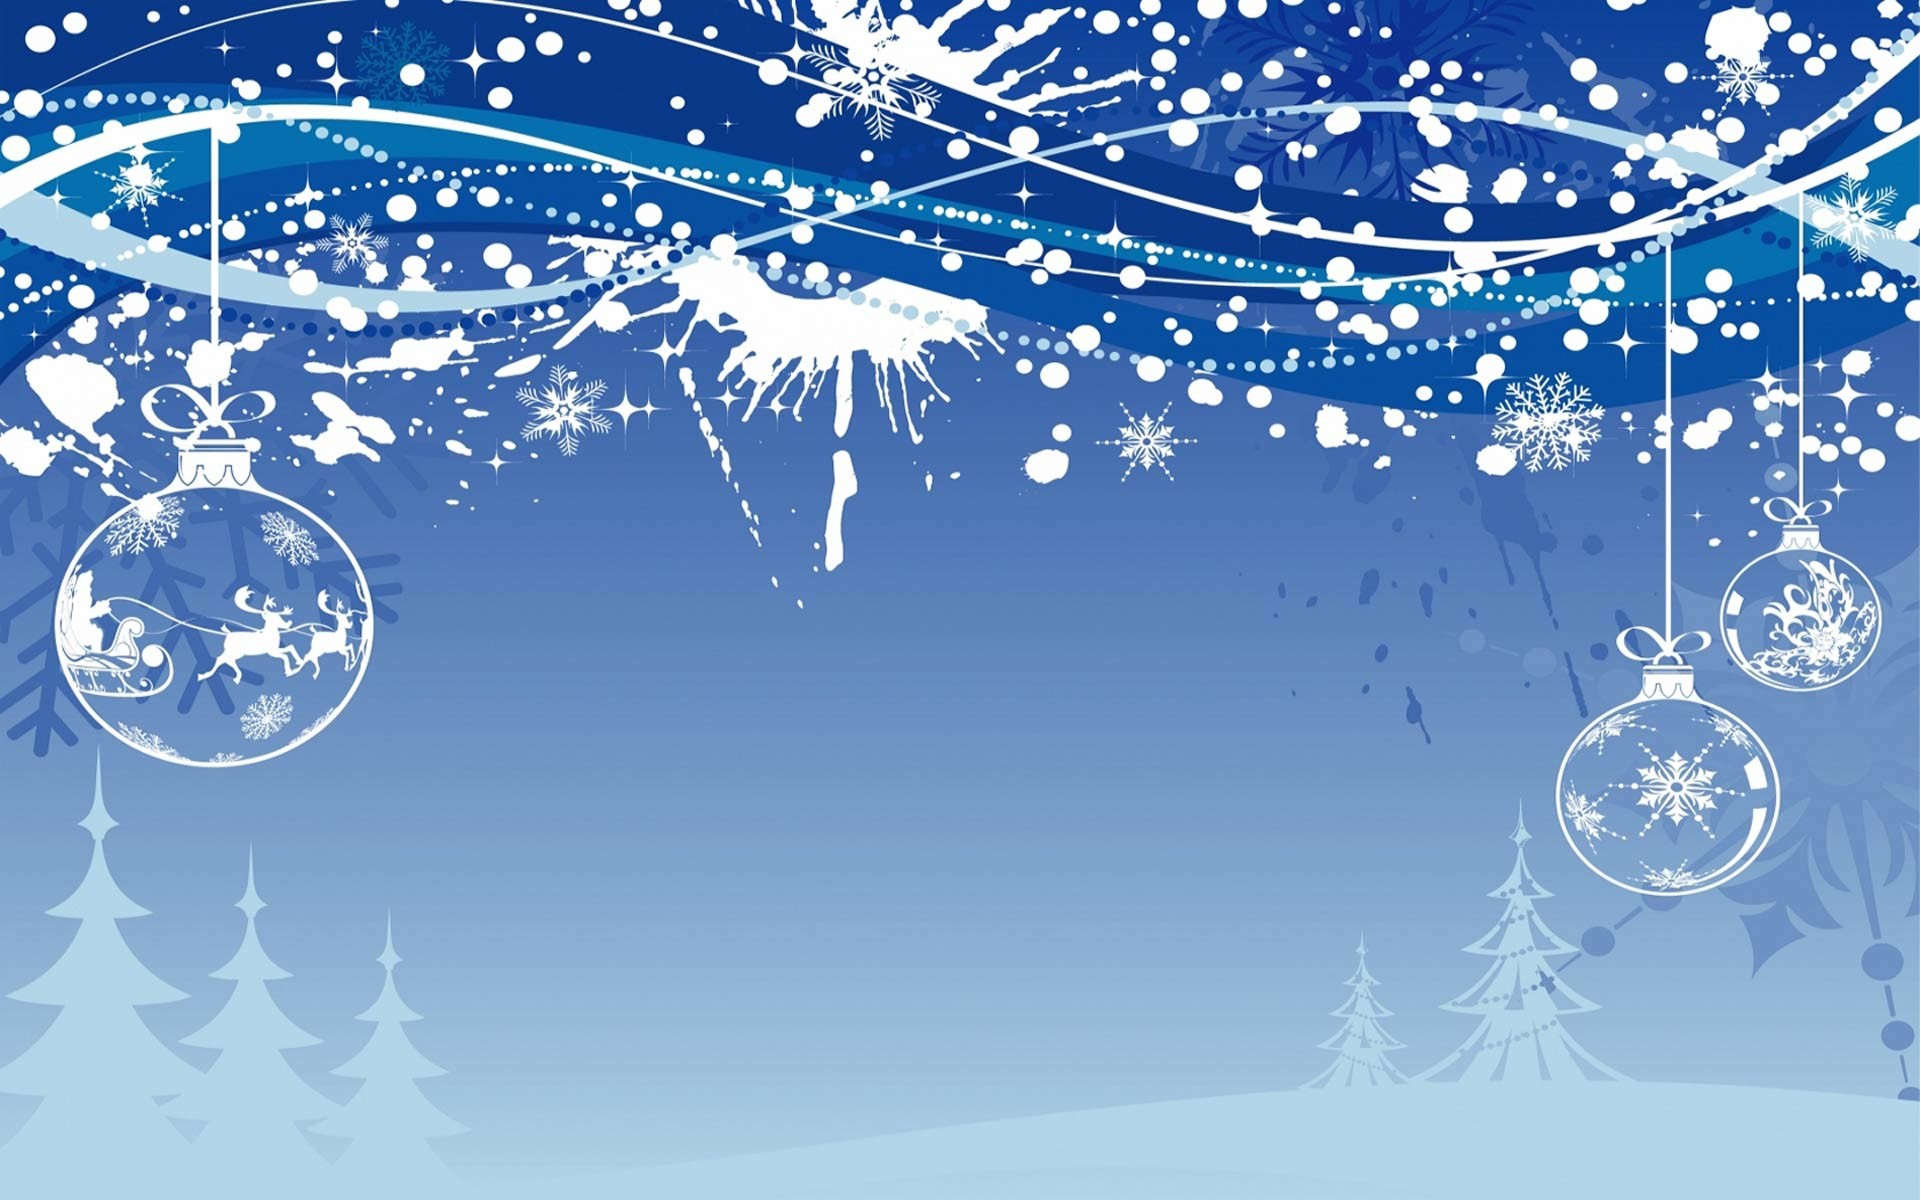 Res: 1920x1200, Christmas Wallpaper For Desktop